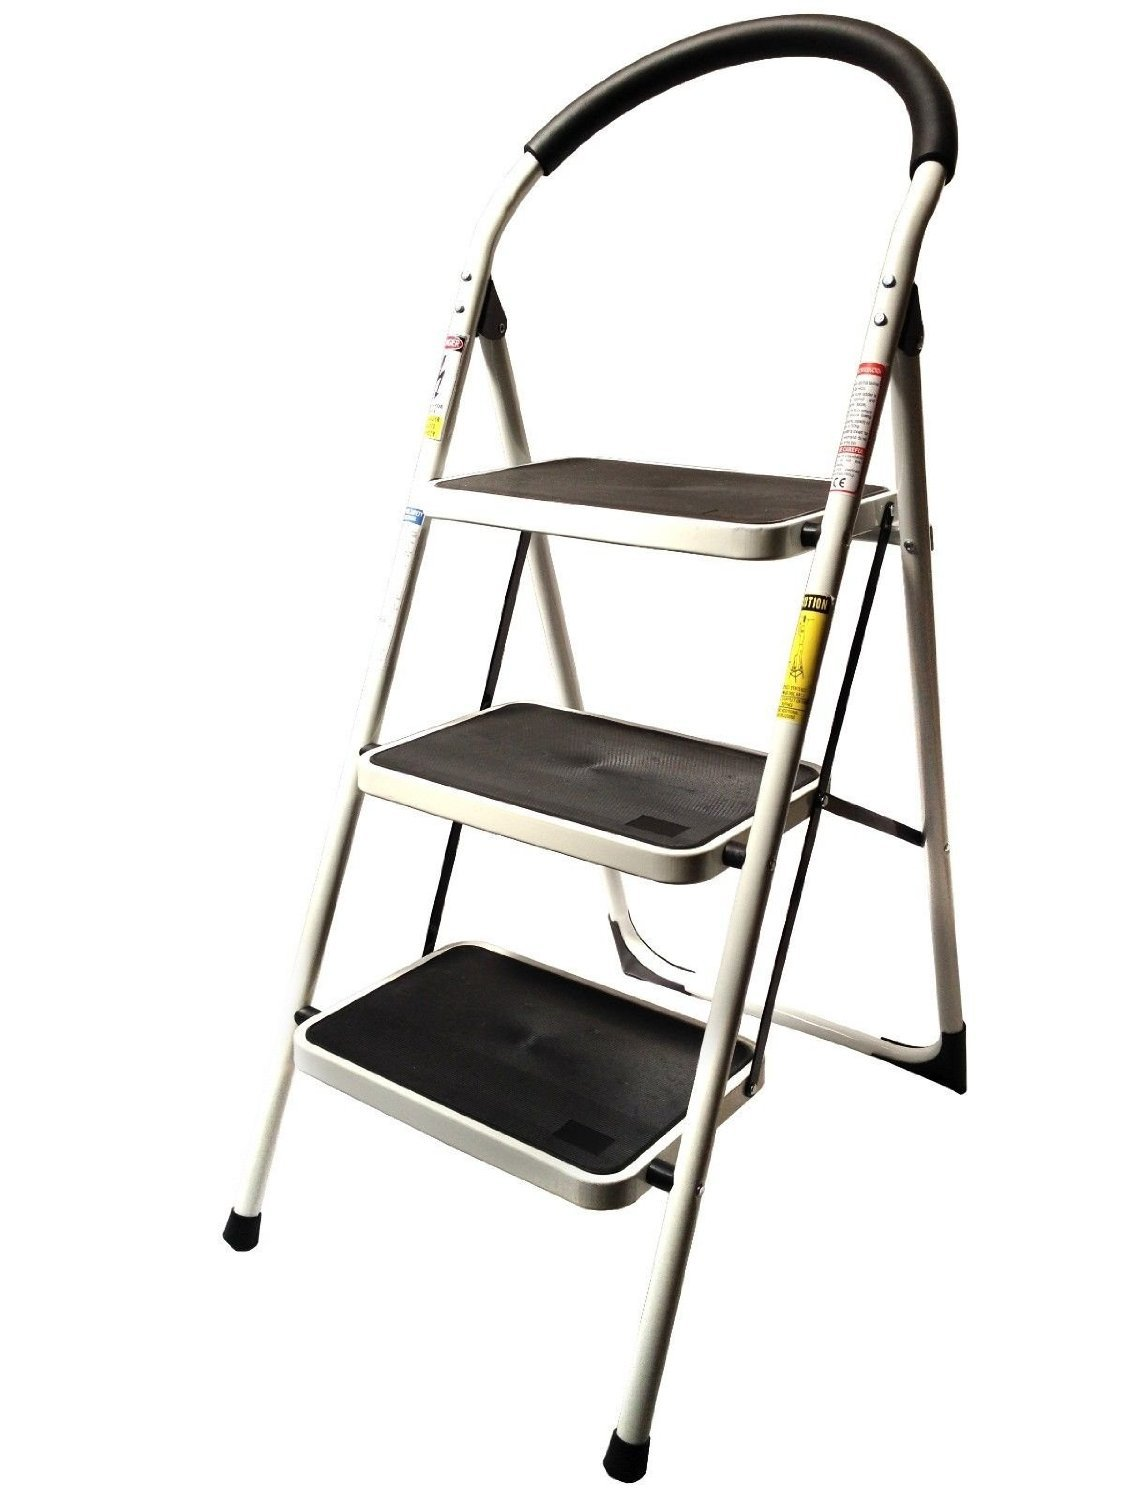 Amazon.com LavoHome 330lbs Upper Reach Reinforced Metal Folding Step Ladder Stool Household Kitchen Use (Three Step Ladder) Kitchen u0026 Dining  sc 1 st  Amazon.com & Amazon.com: LavoHome 330lbs Upper Reach Reinforced Metal Folding ... islam-shia.org